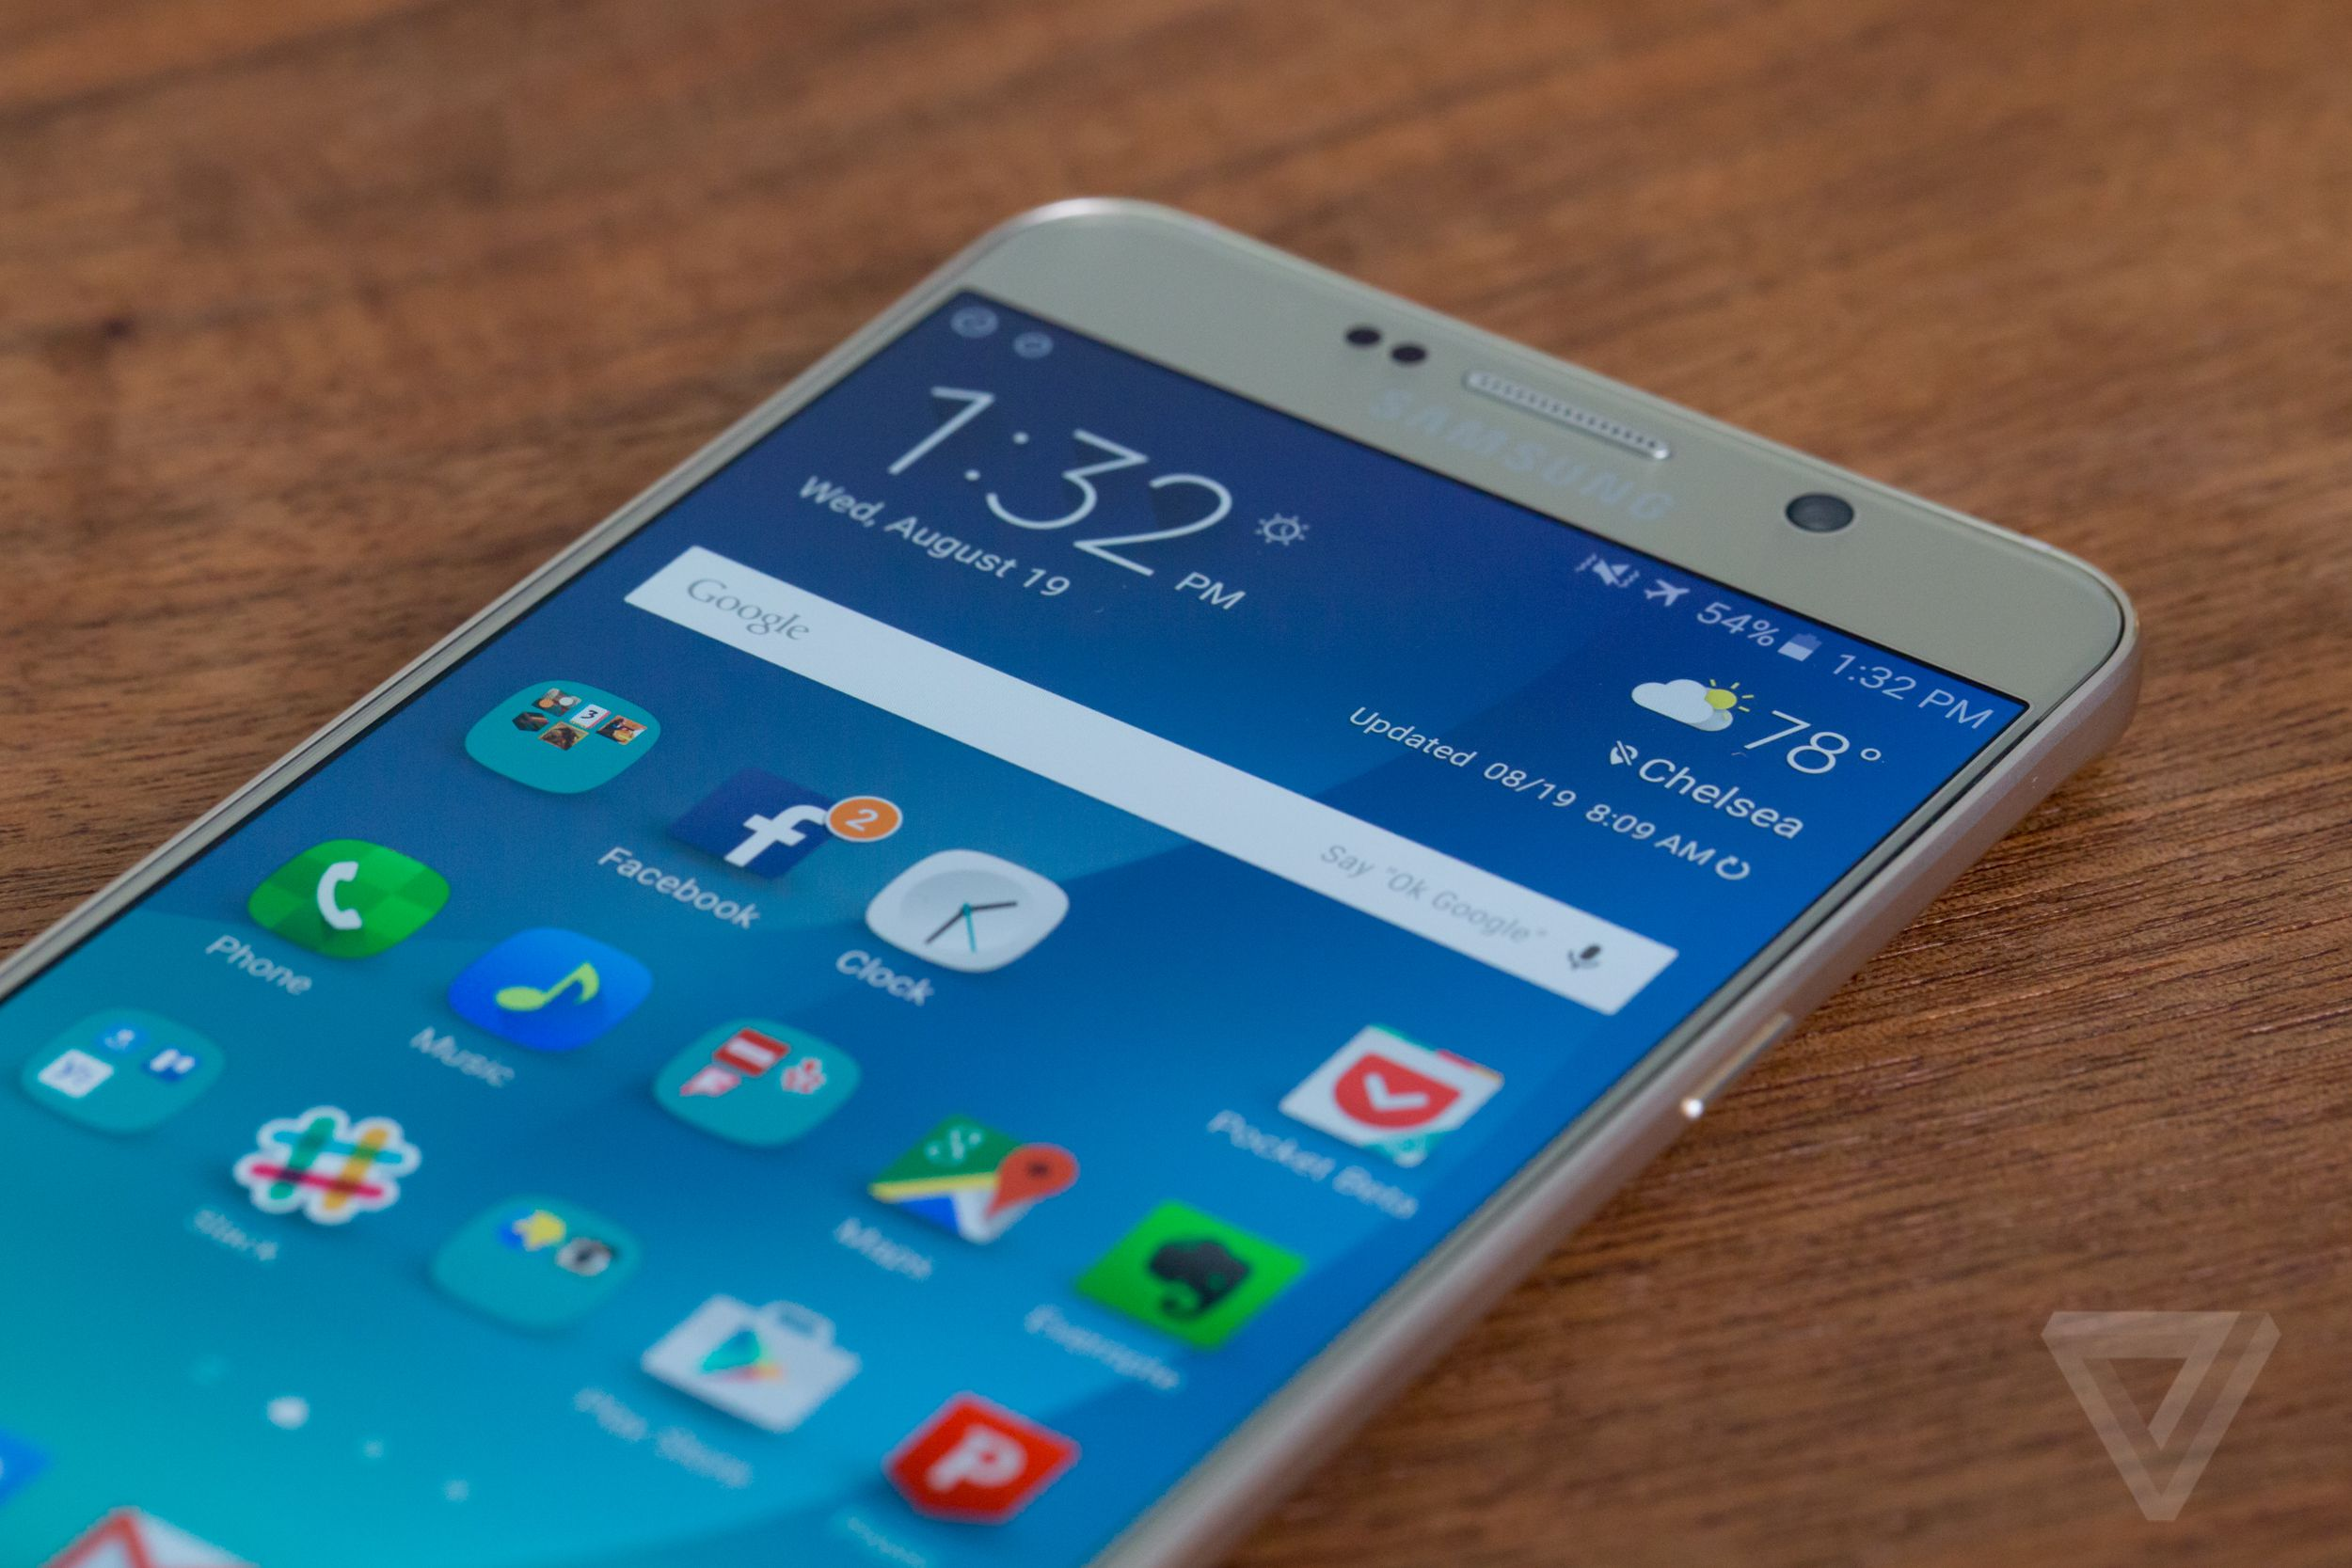 samsung galaxy note 5 review the verge the note 5 is running on android 5 1 with samsung s suite of software essentially unchanged from the s6 here as well samsung s lighter touch is still